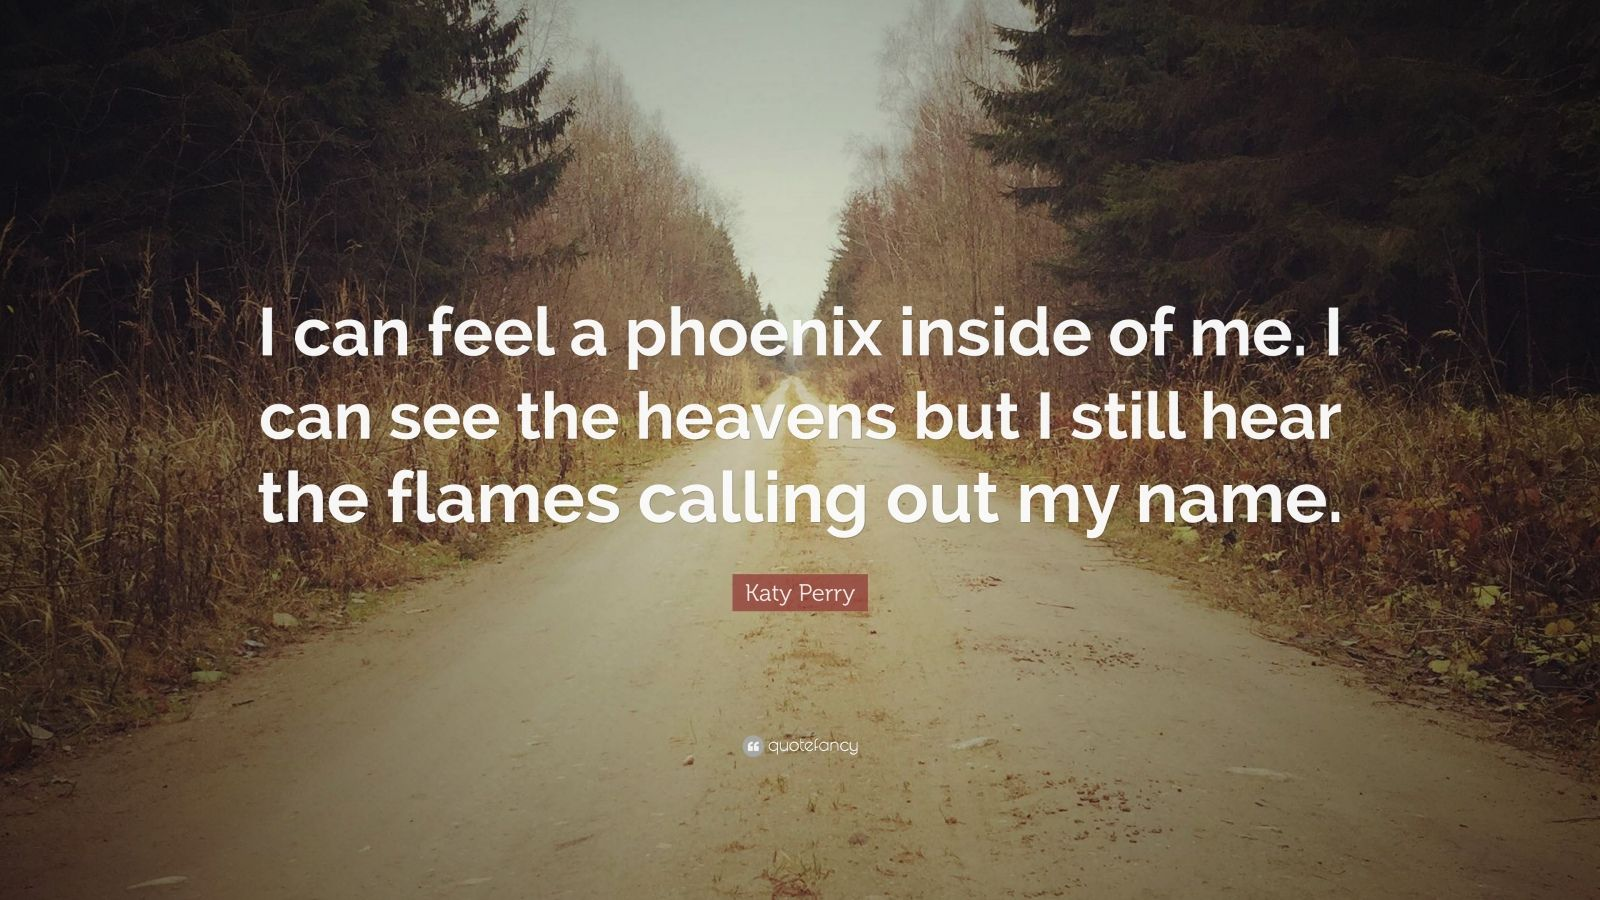 """Katy Perry Quote: """"I can feel a phoenix inside of me. I can see the heavens but I still hear the flames calling out my name."""""""